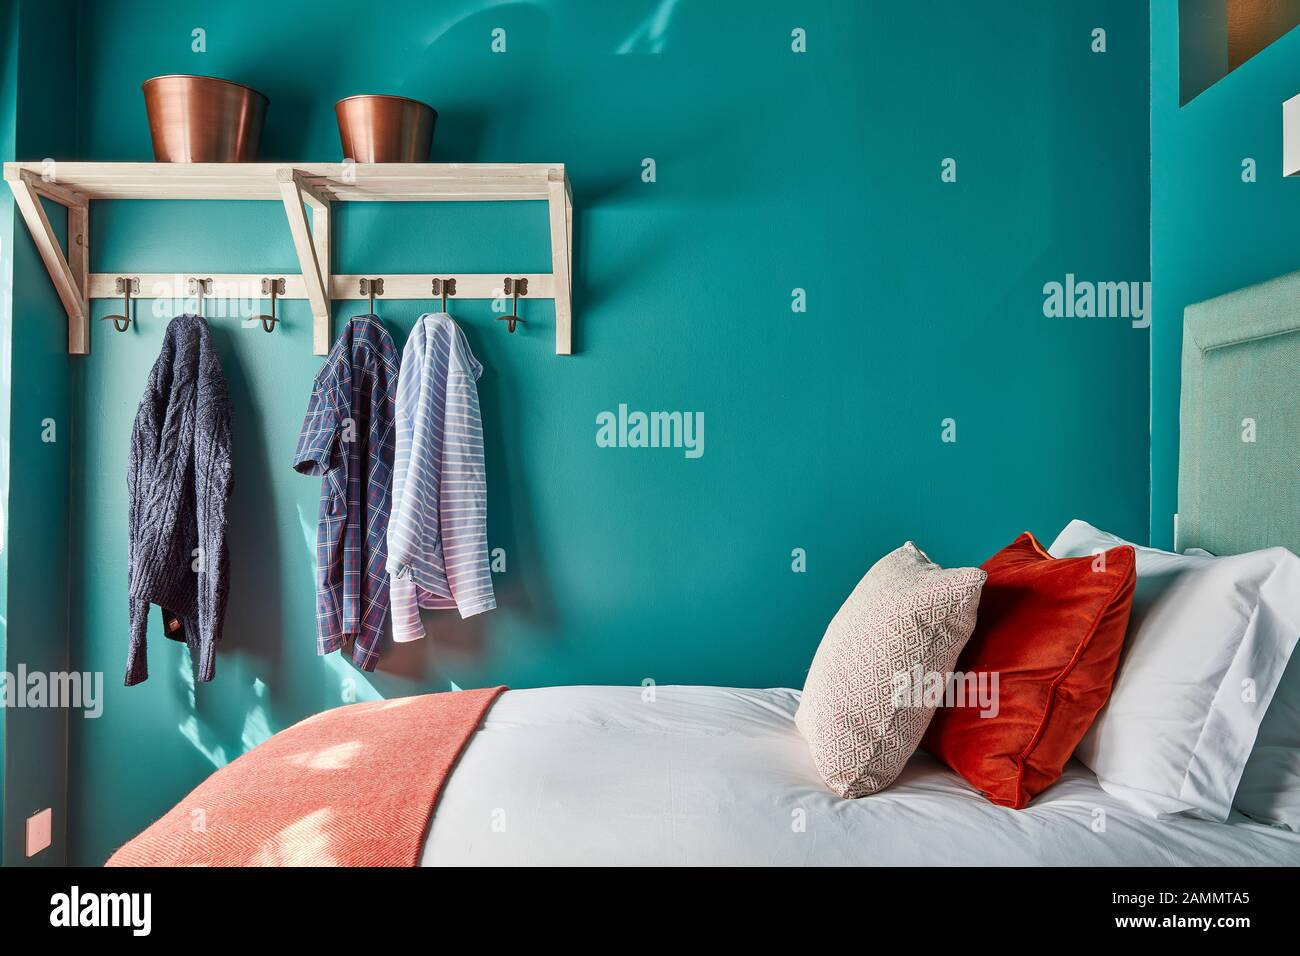 Single Bed High Resolution Stock Photography And Images Alamy